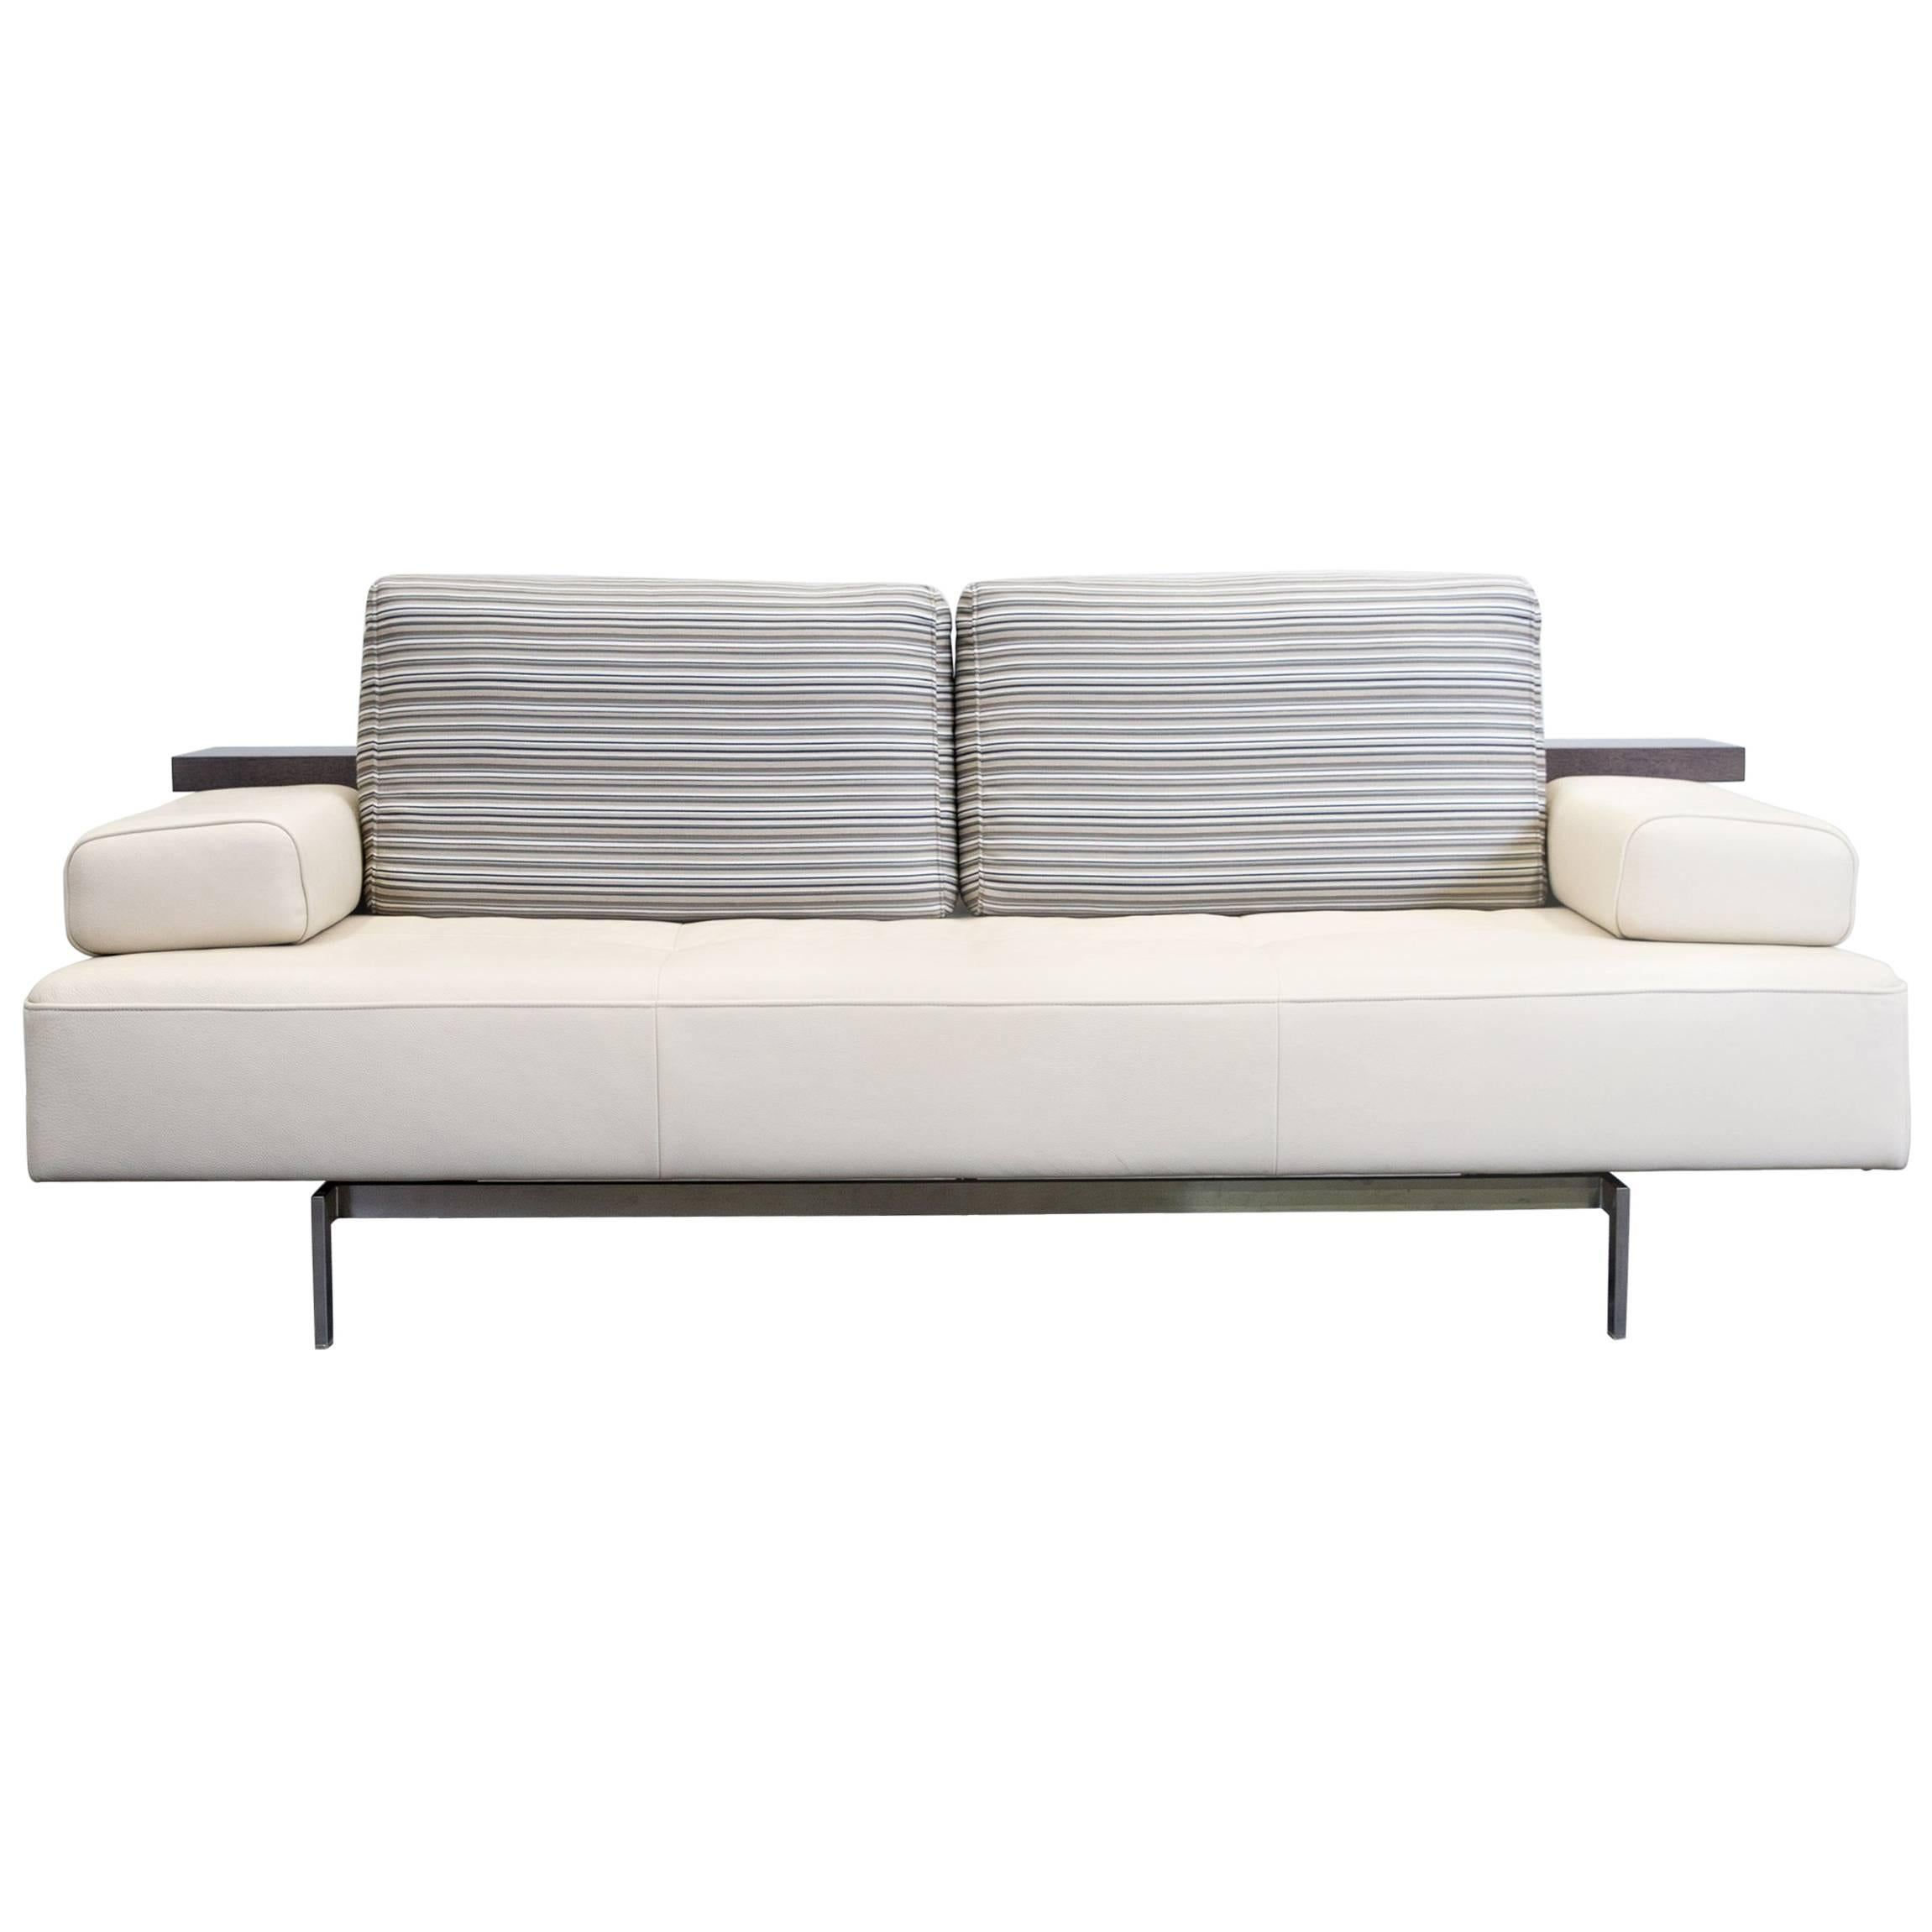 Rolf Benz Dono Designer Three Seat Leather Sofa, Crème Beige At 1stdibs